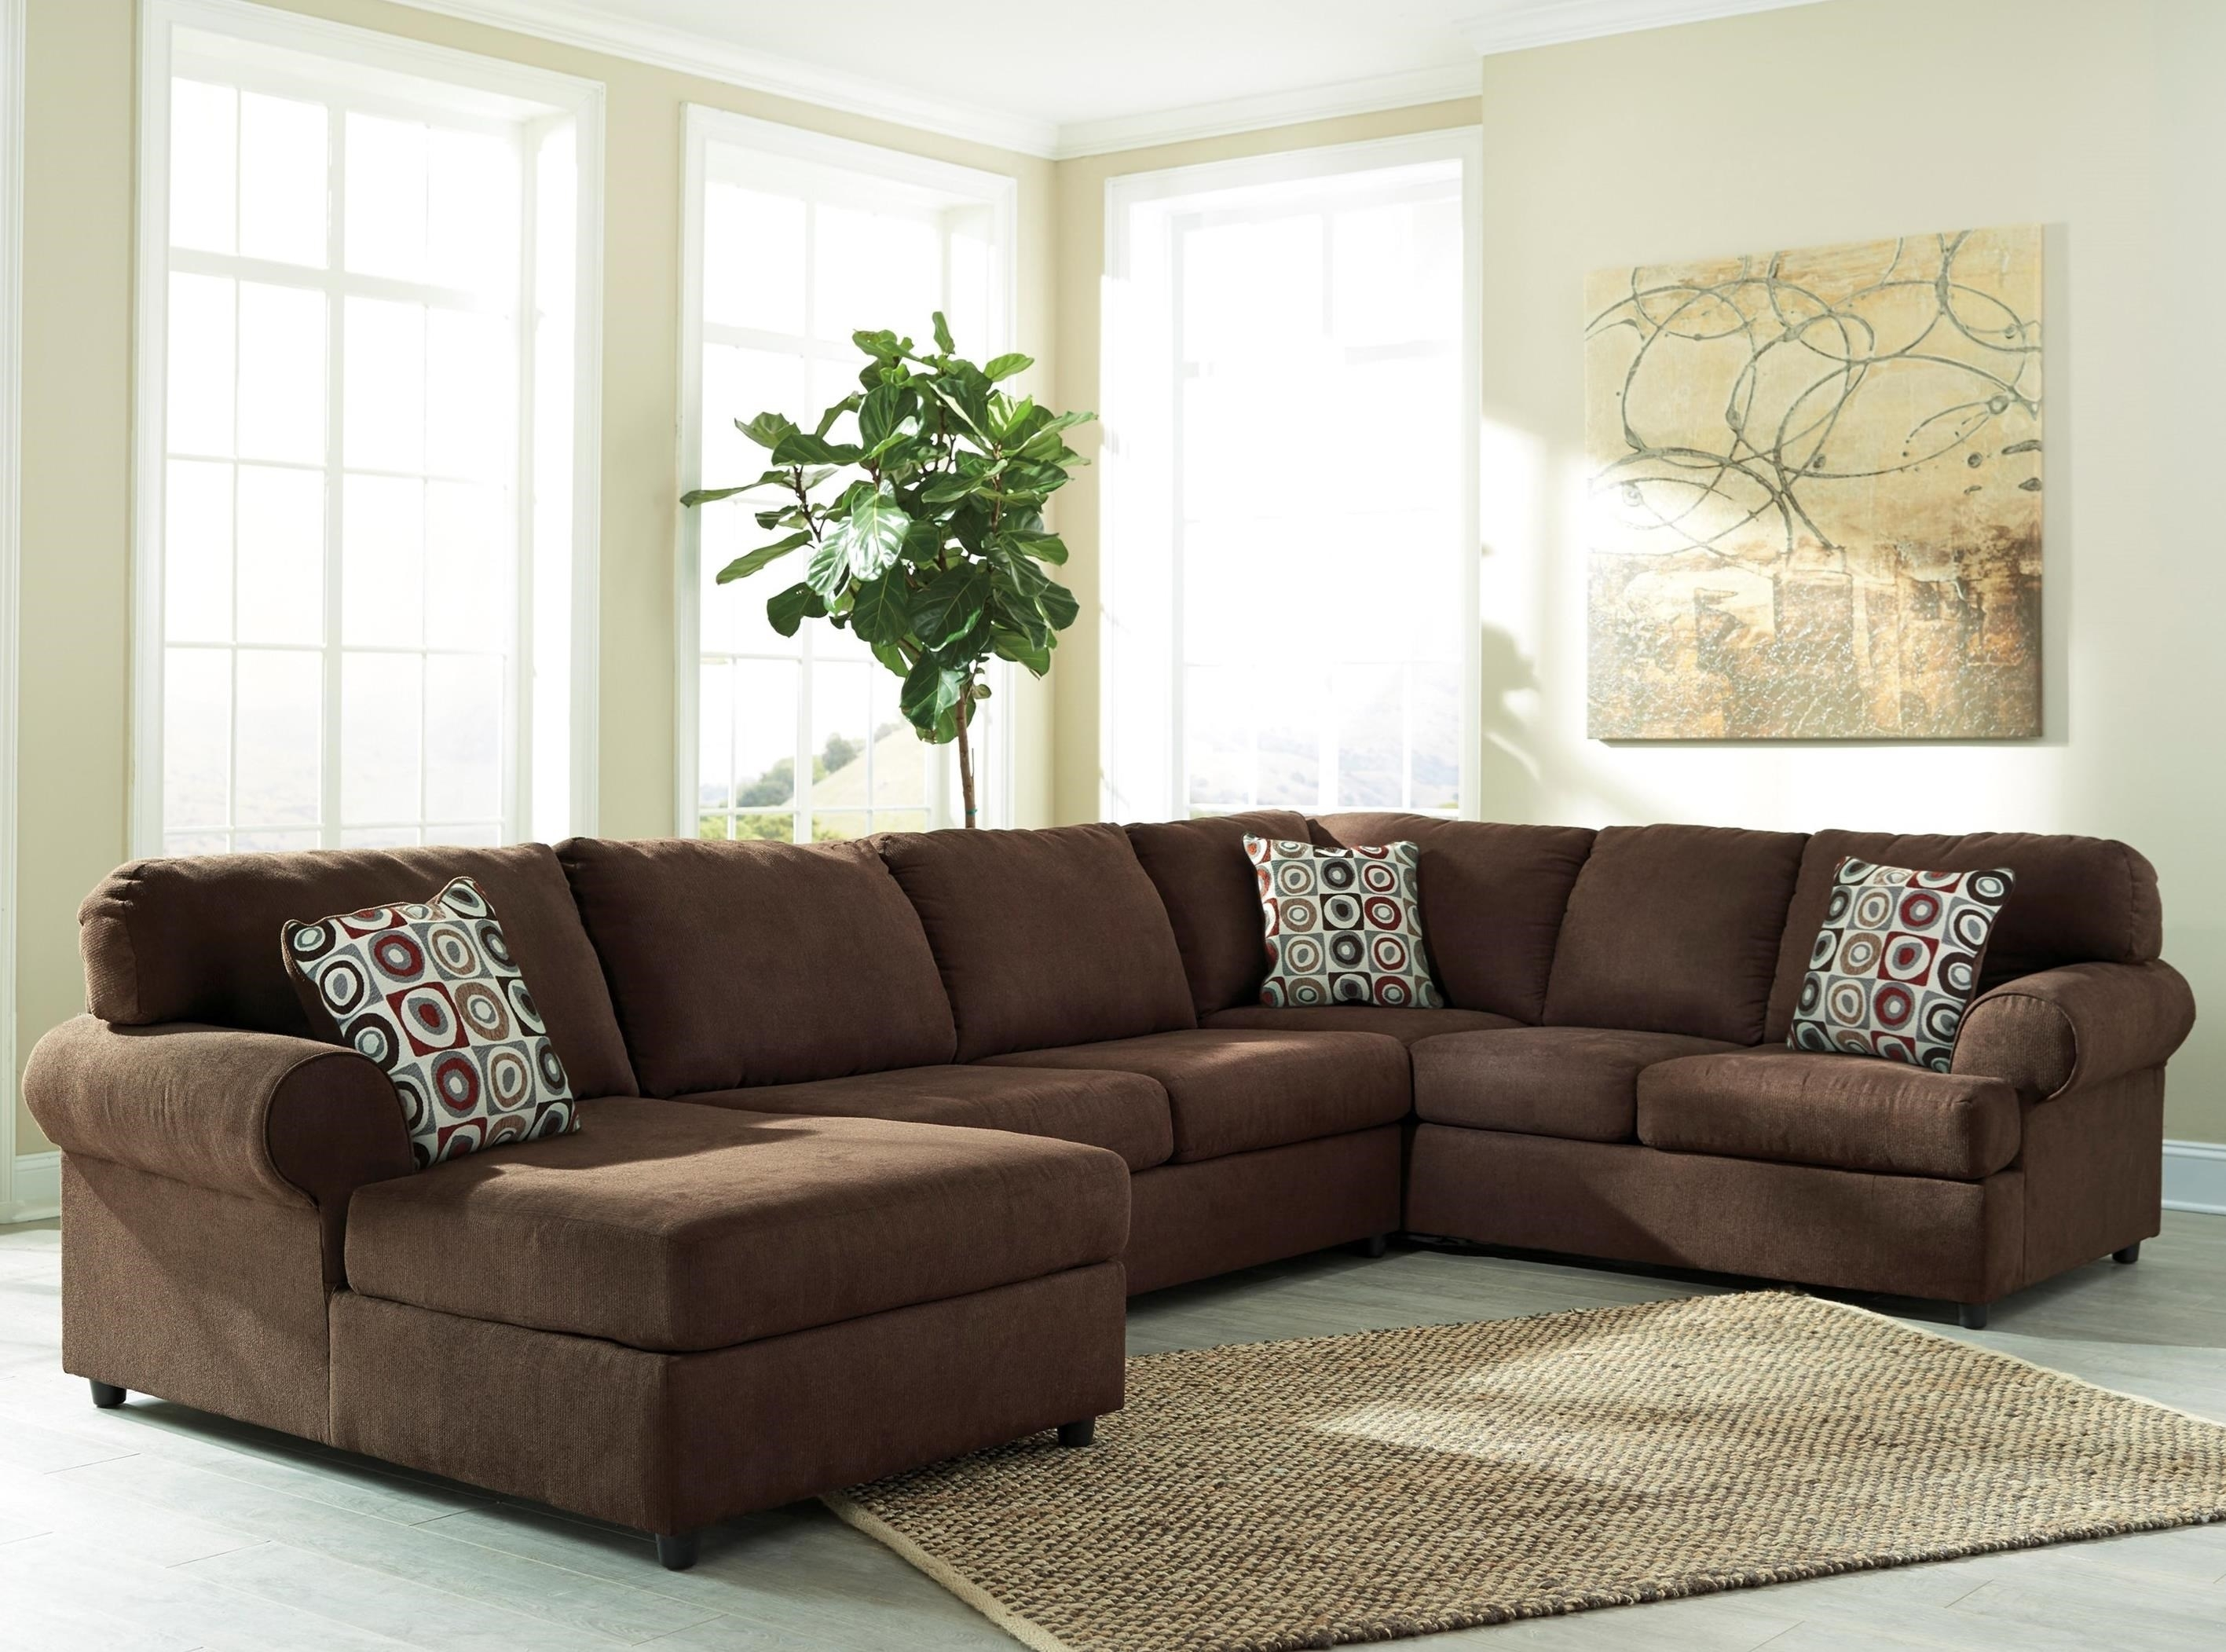 Signature Designashley Jayceon 3 Piece Sectional With Left Pertaining To East Bay Sectional Sofas (View 9 of 10)